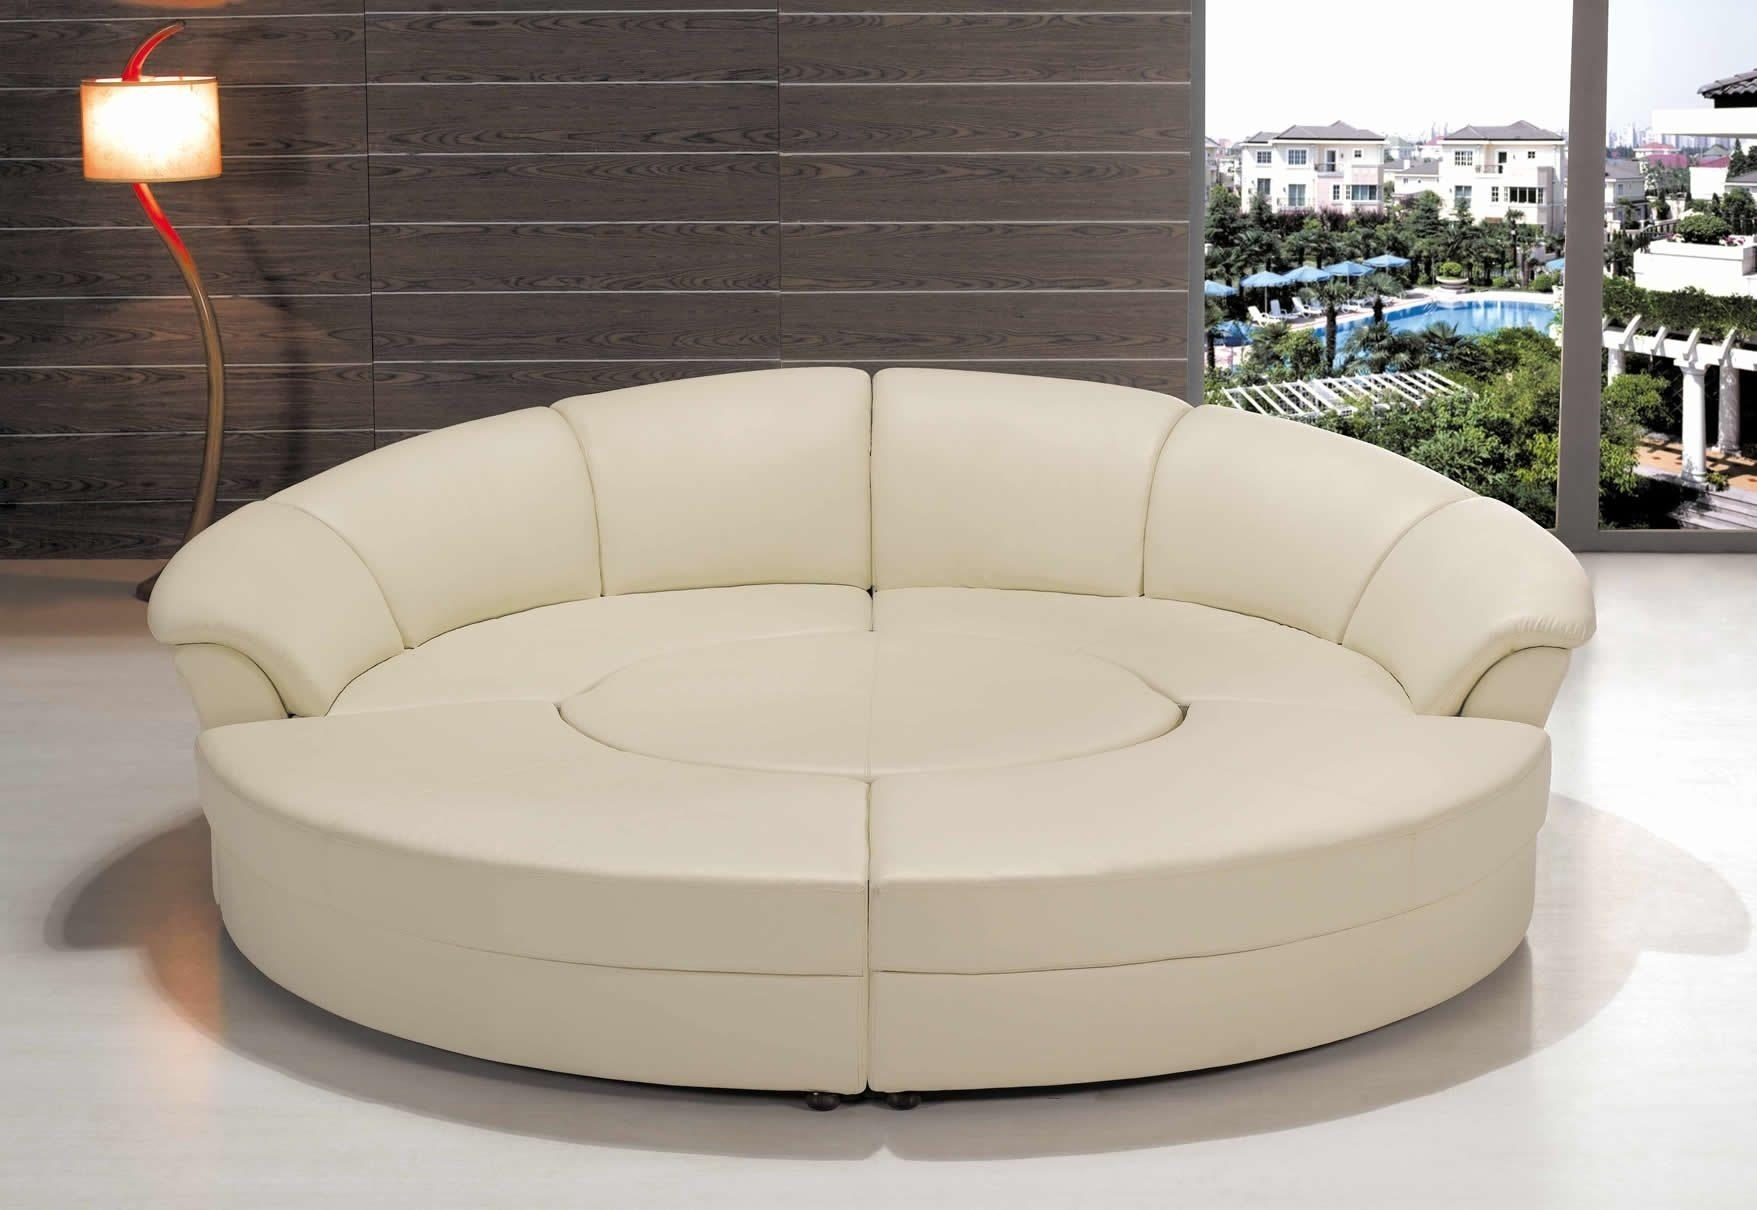 Outstanding Round Sofa Chair With Additional Famous Chair Designs With Regard To Round Sofa Chairs (View 14 of 20)